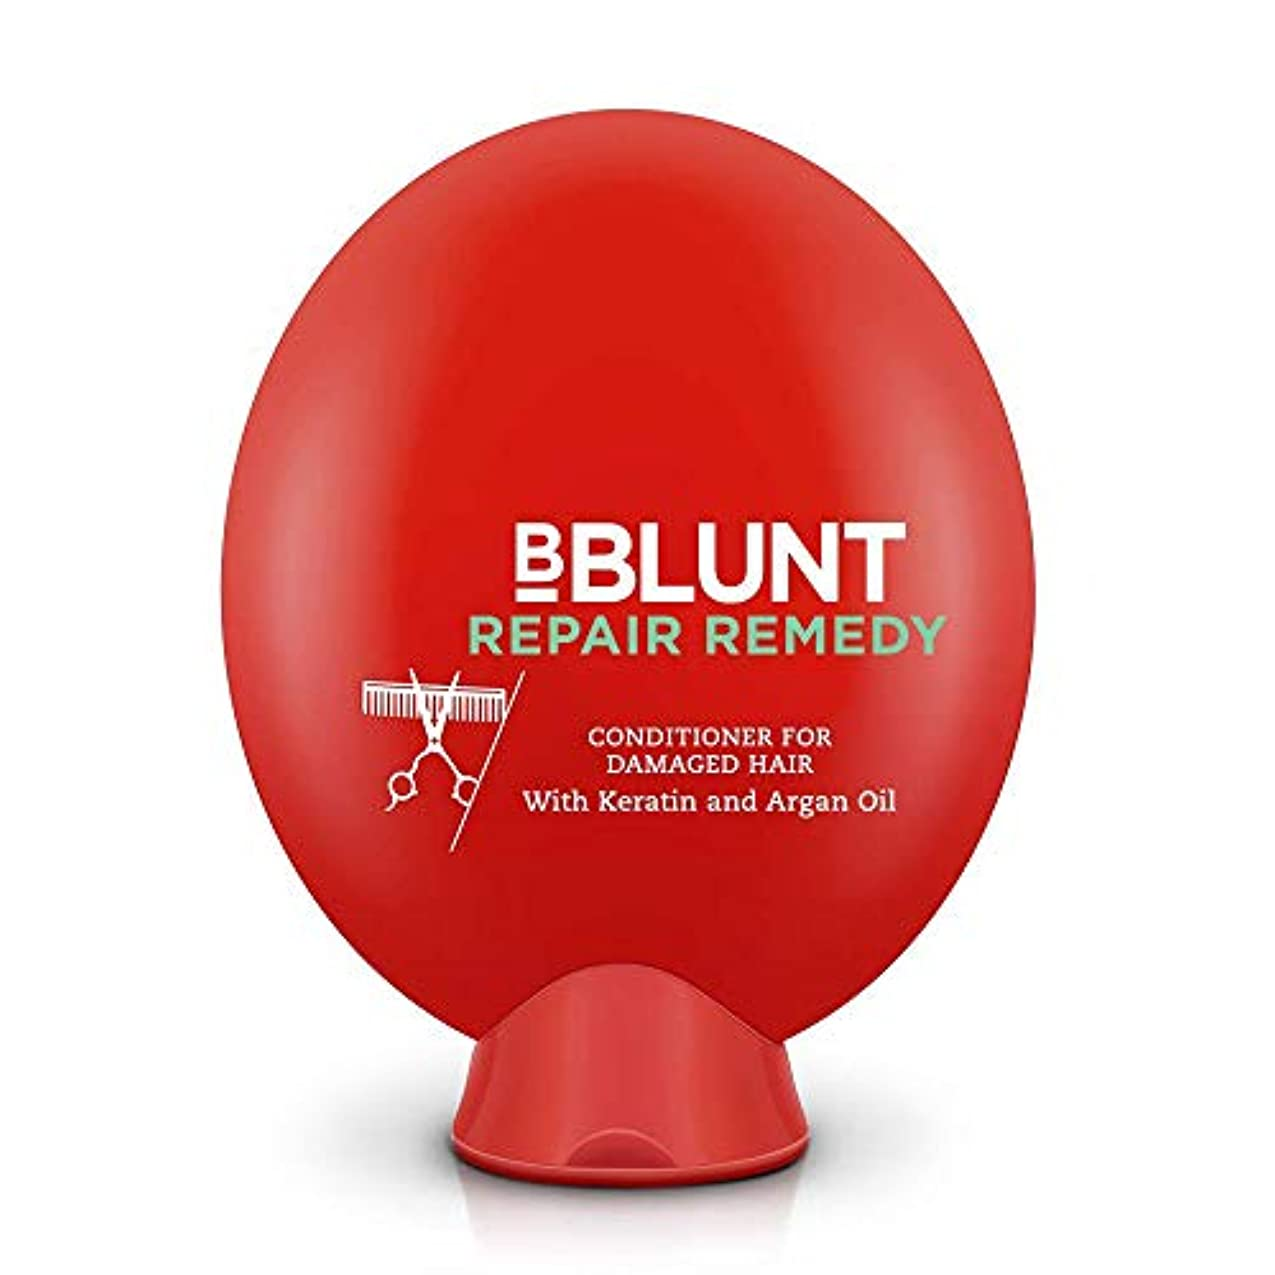 支配的感じ海峡BBLUNT Repair Remedy Conditioner for Damaged Hair, 200g (Keratin and Argan Oil)